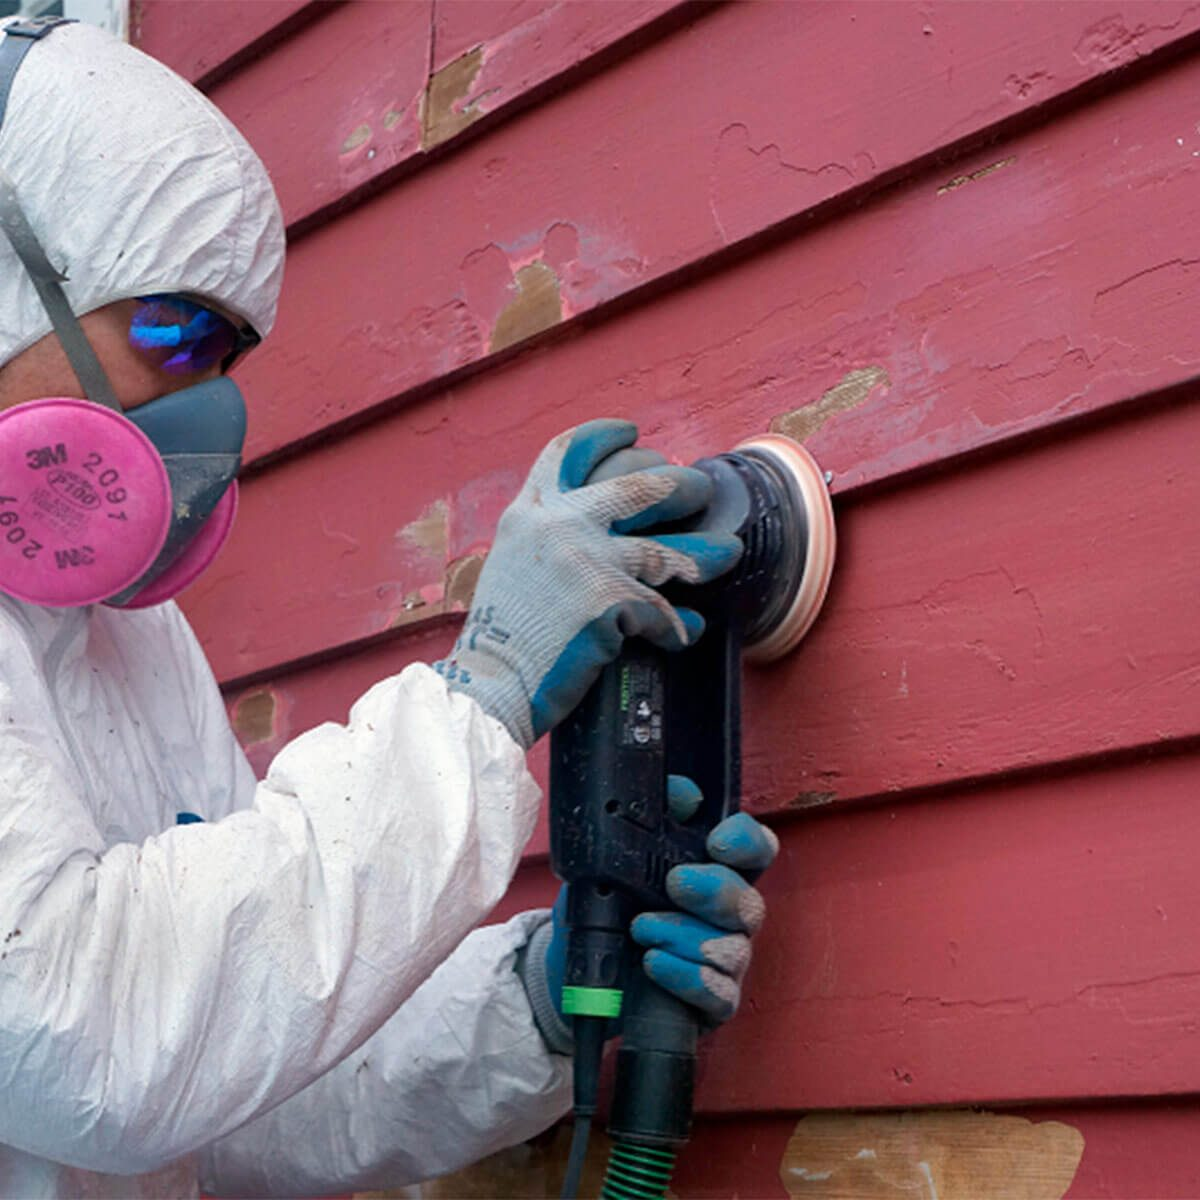 man sanding peeling paint on red house